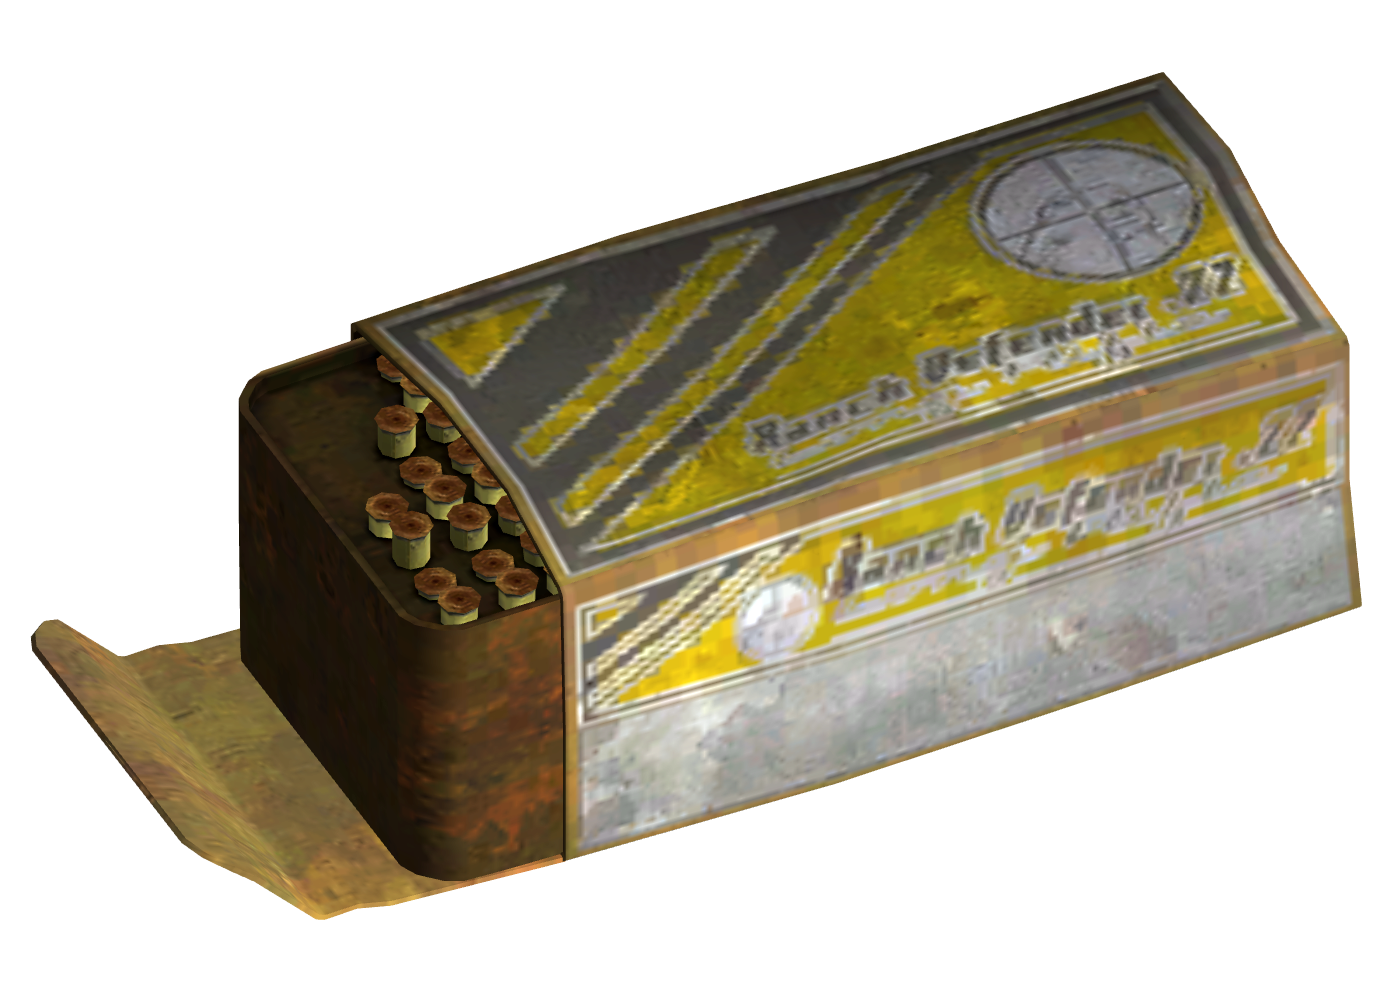 latest?cb=20110213173836 fallout new vegas ammunition fallout wiki fandom powered by wikia fallout 4 fuse box mod at cos-gaming.co